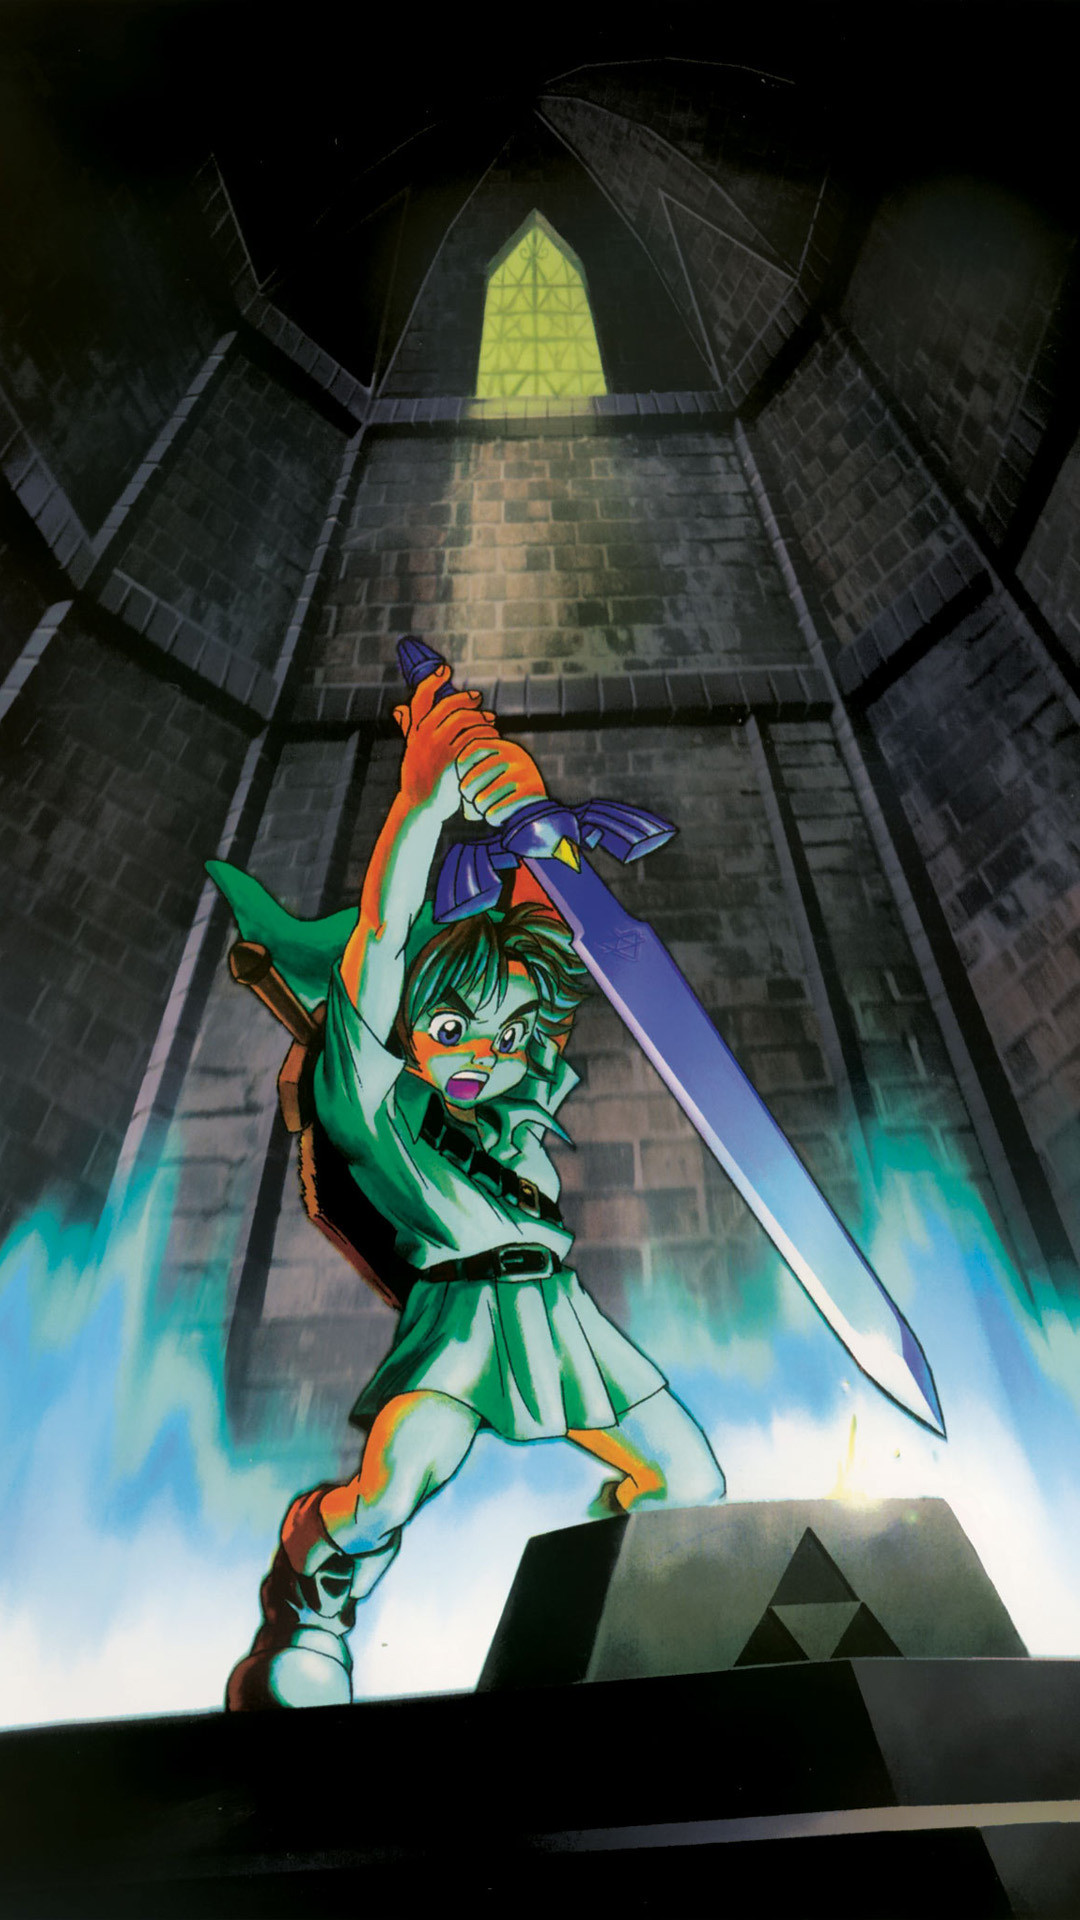 The legend of zelda ocarina of time mobile phone wallpapers in hd